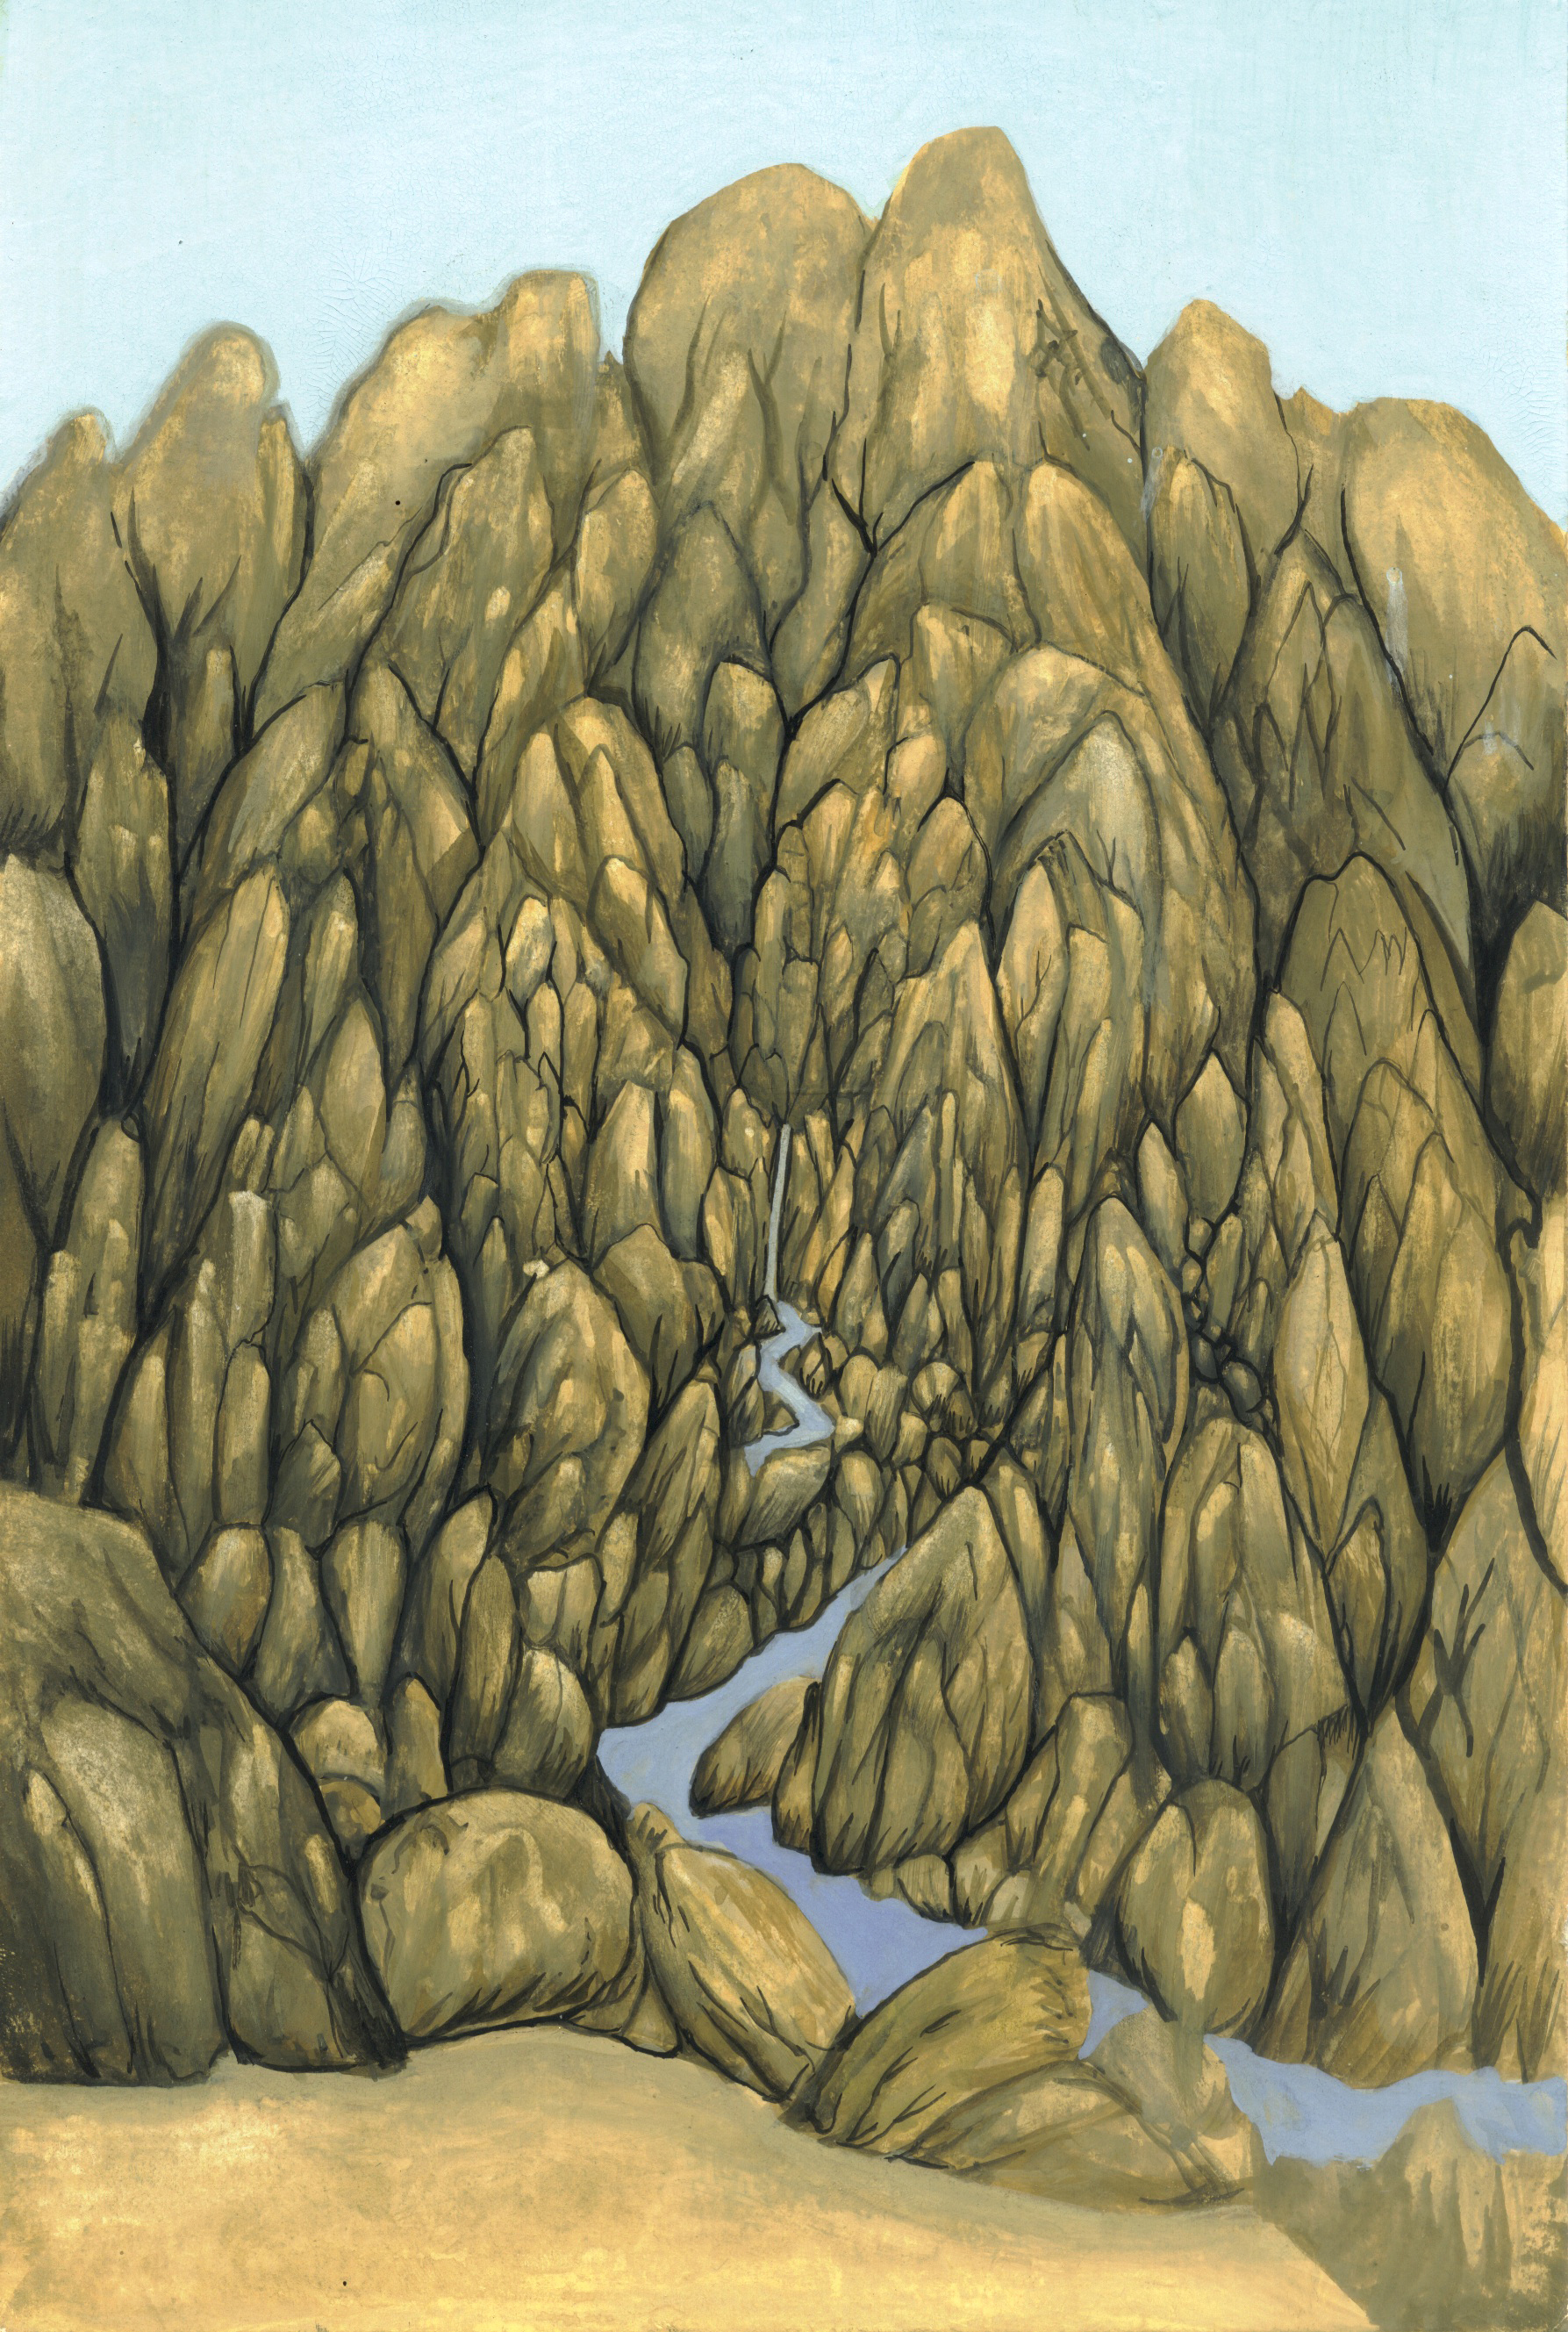 Stream mountain 2007 gouache on paper 9 x 6 inches